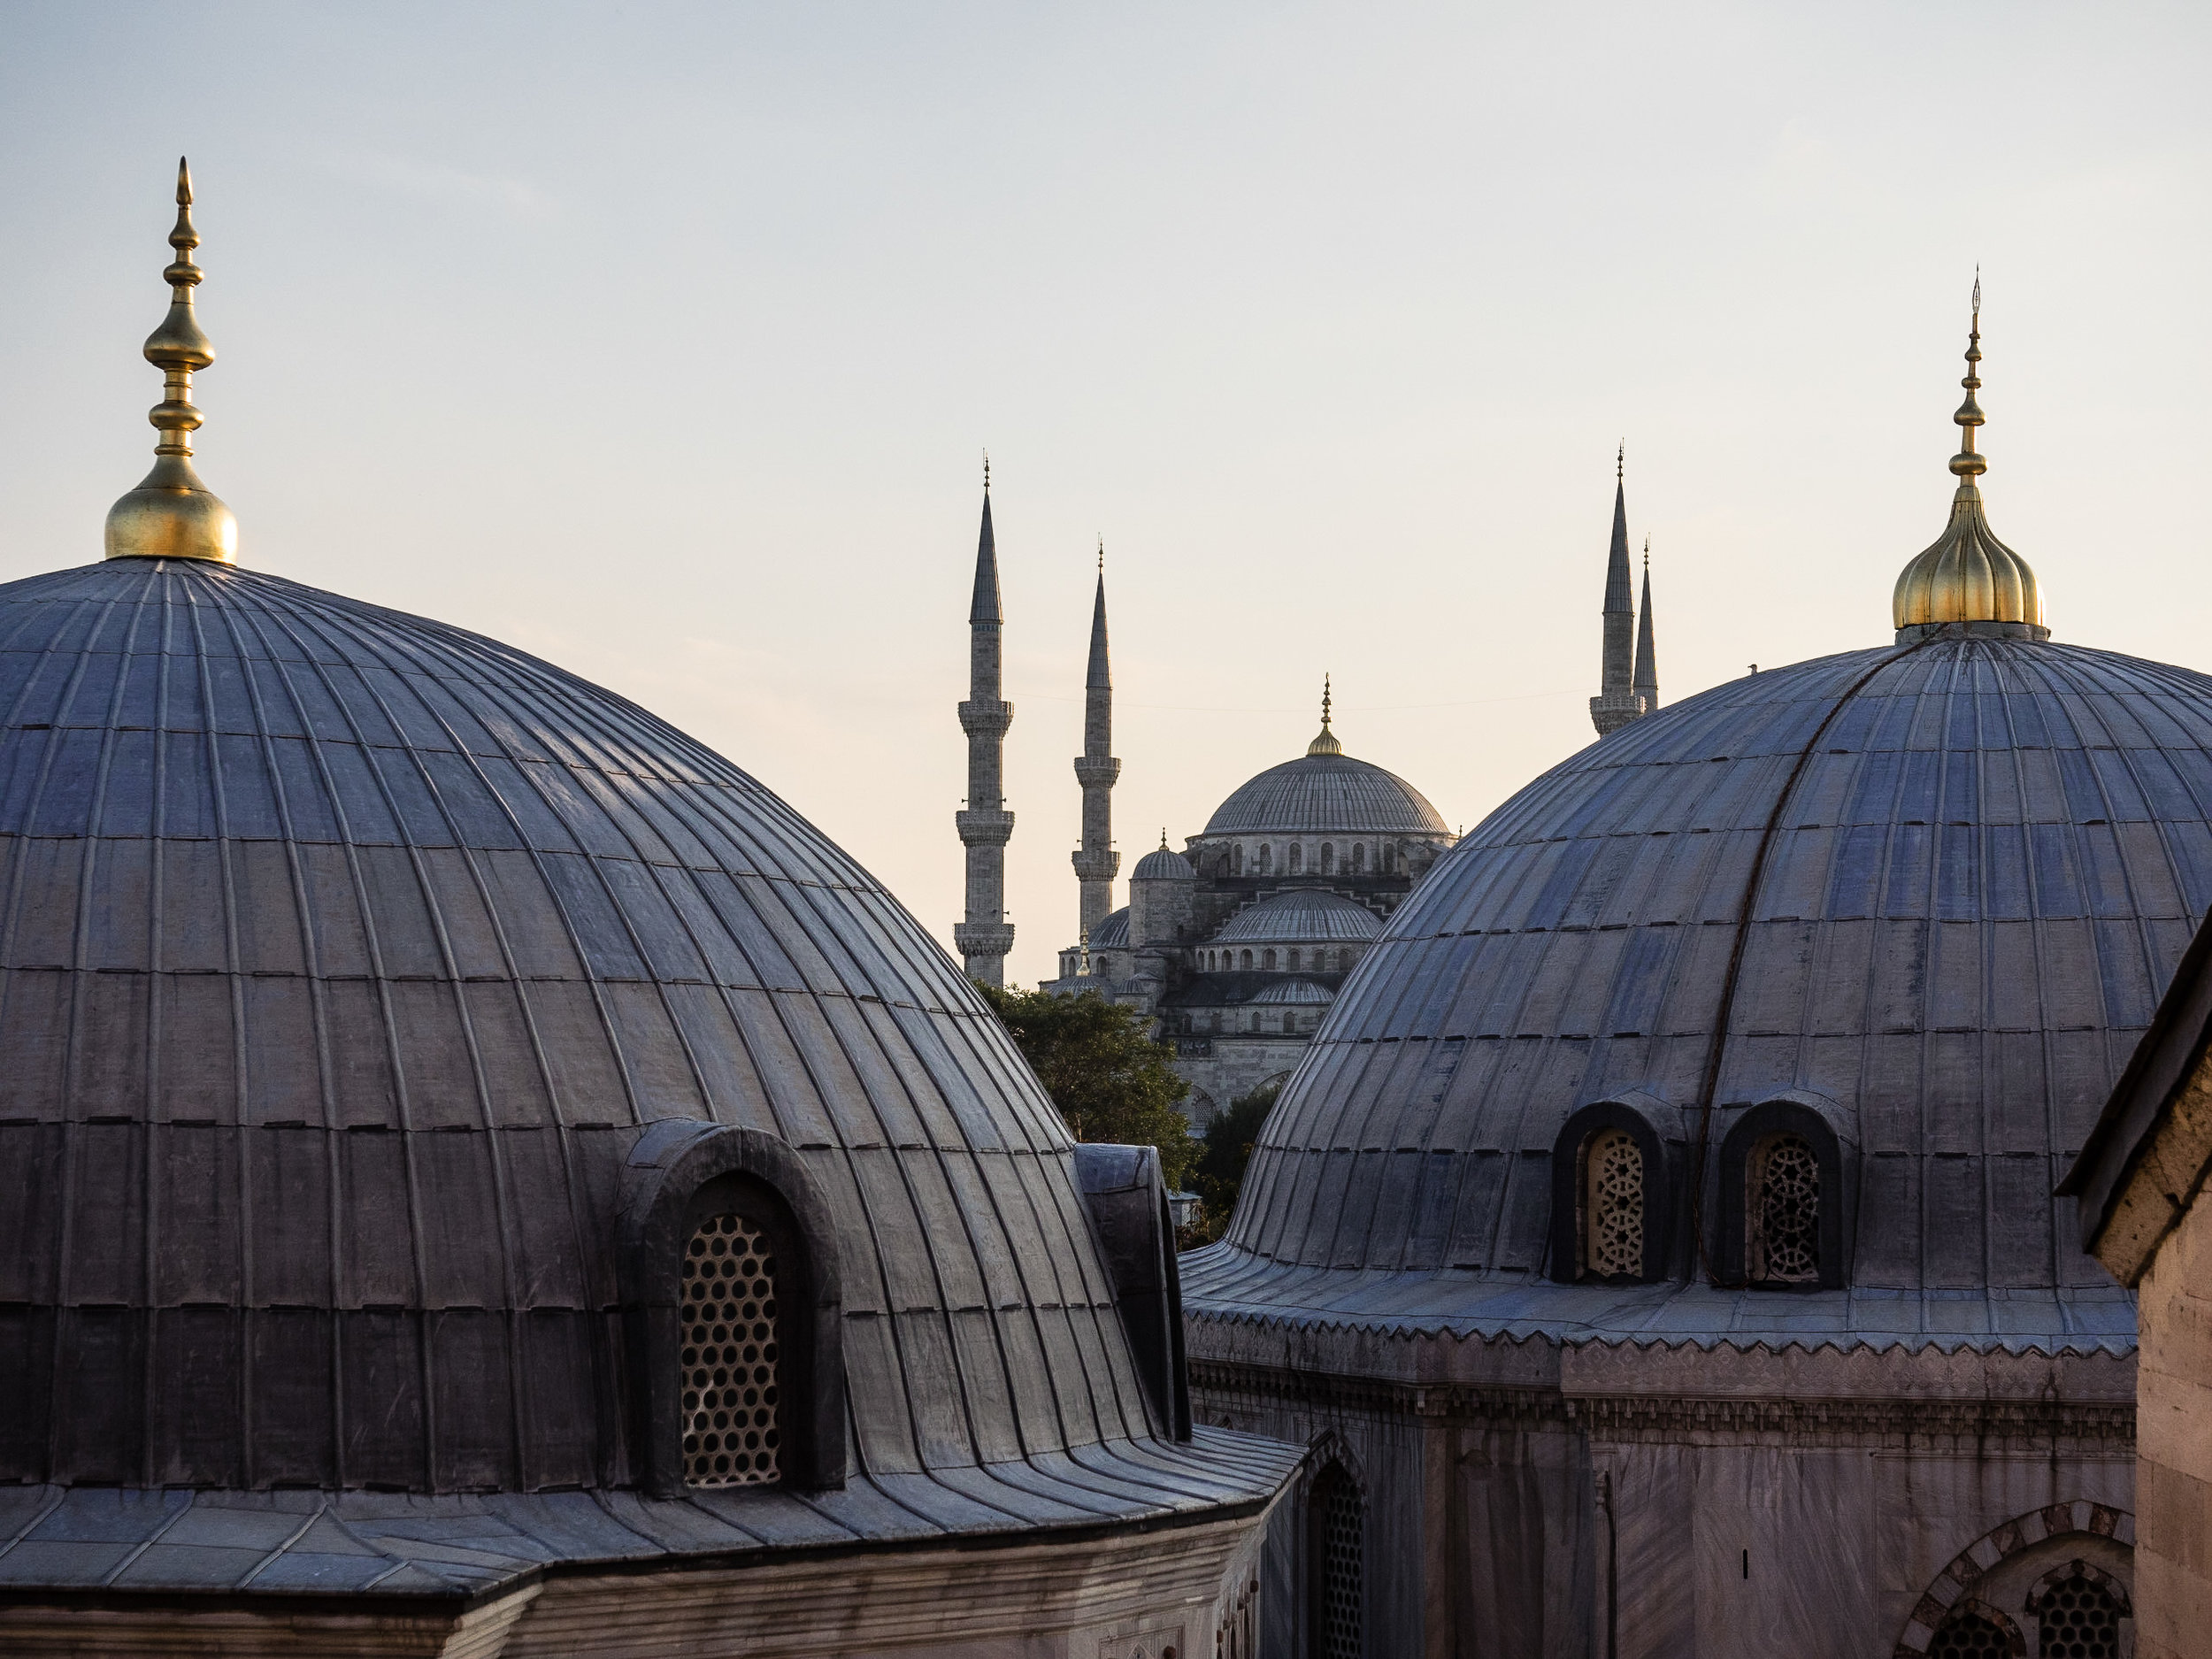 The Blue Mosque, as seen from the Aya Sofia, a former Greek Orthodox Church built in 532 then converted into a mosque during the Ottoman Imperial period.